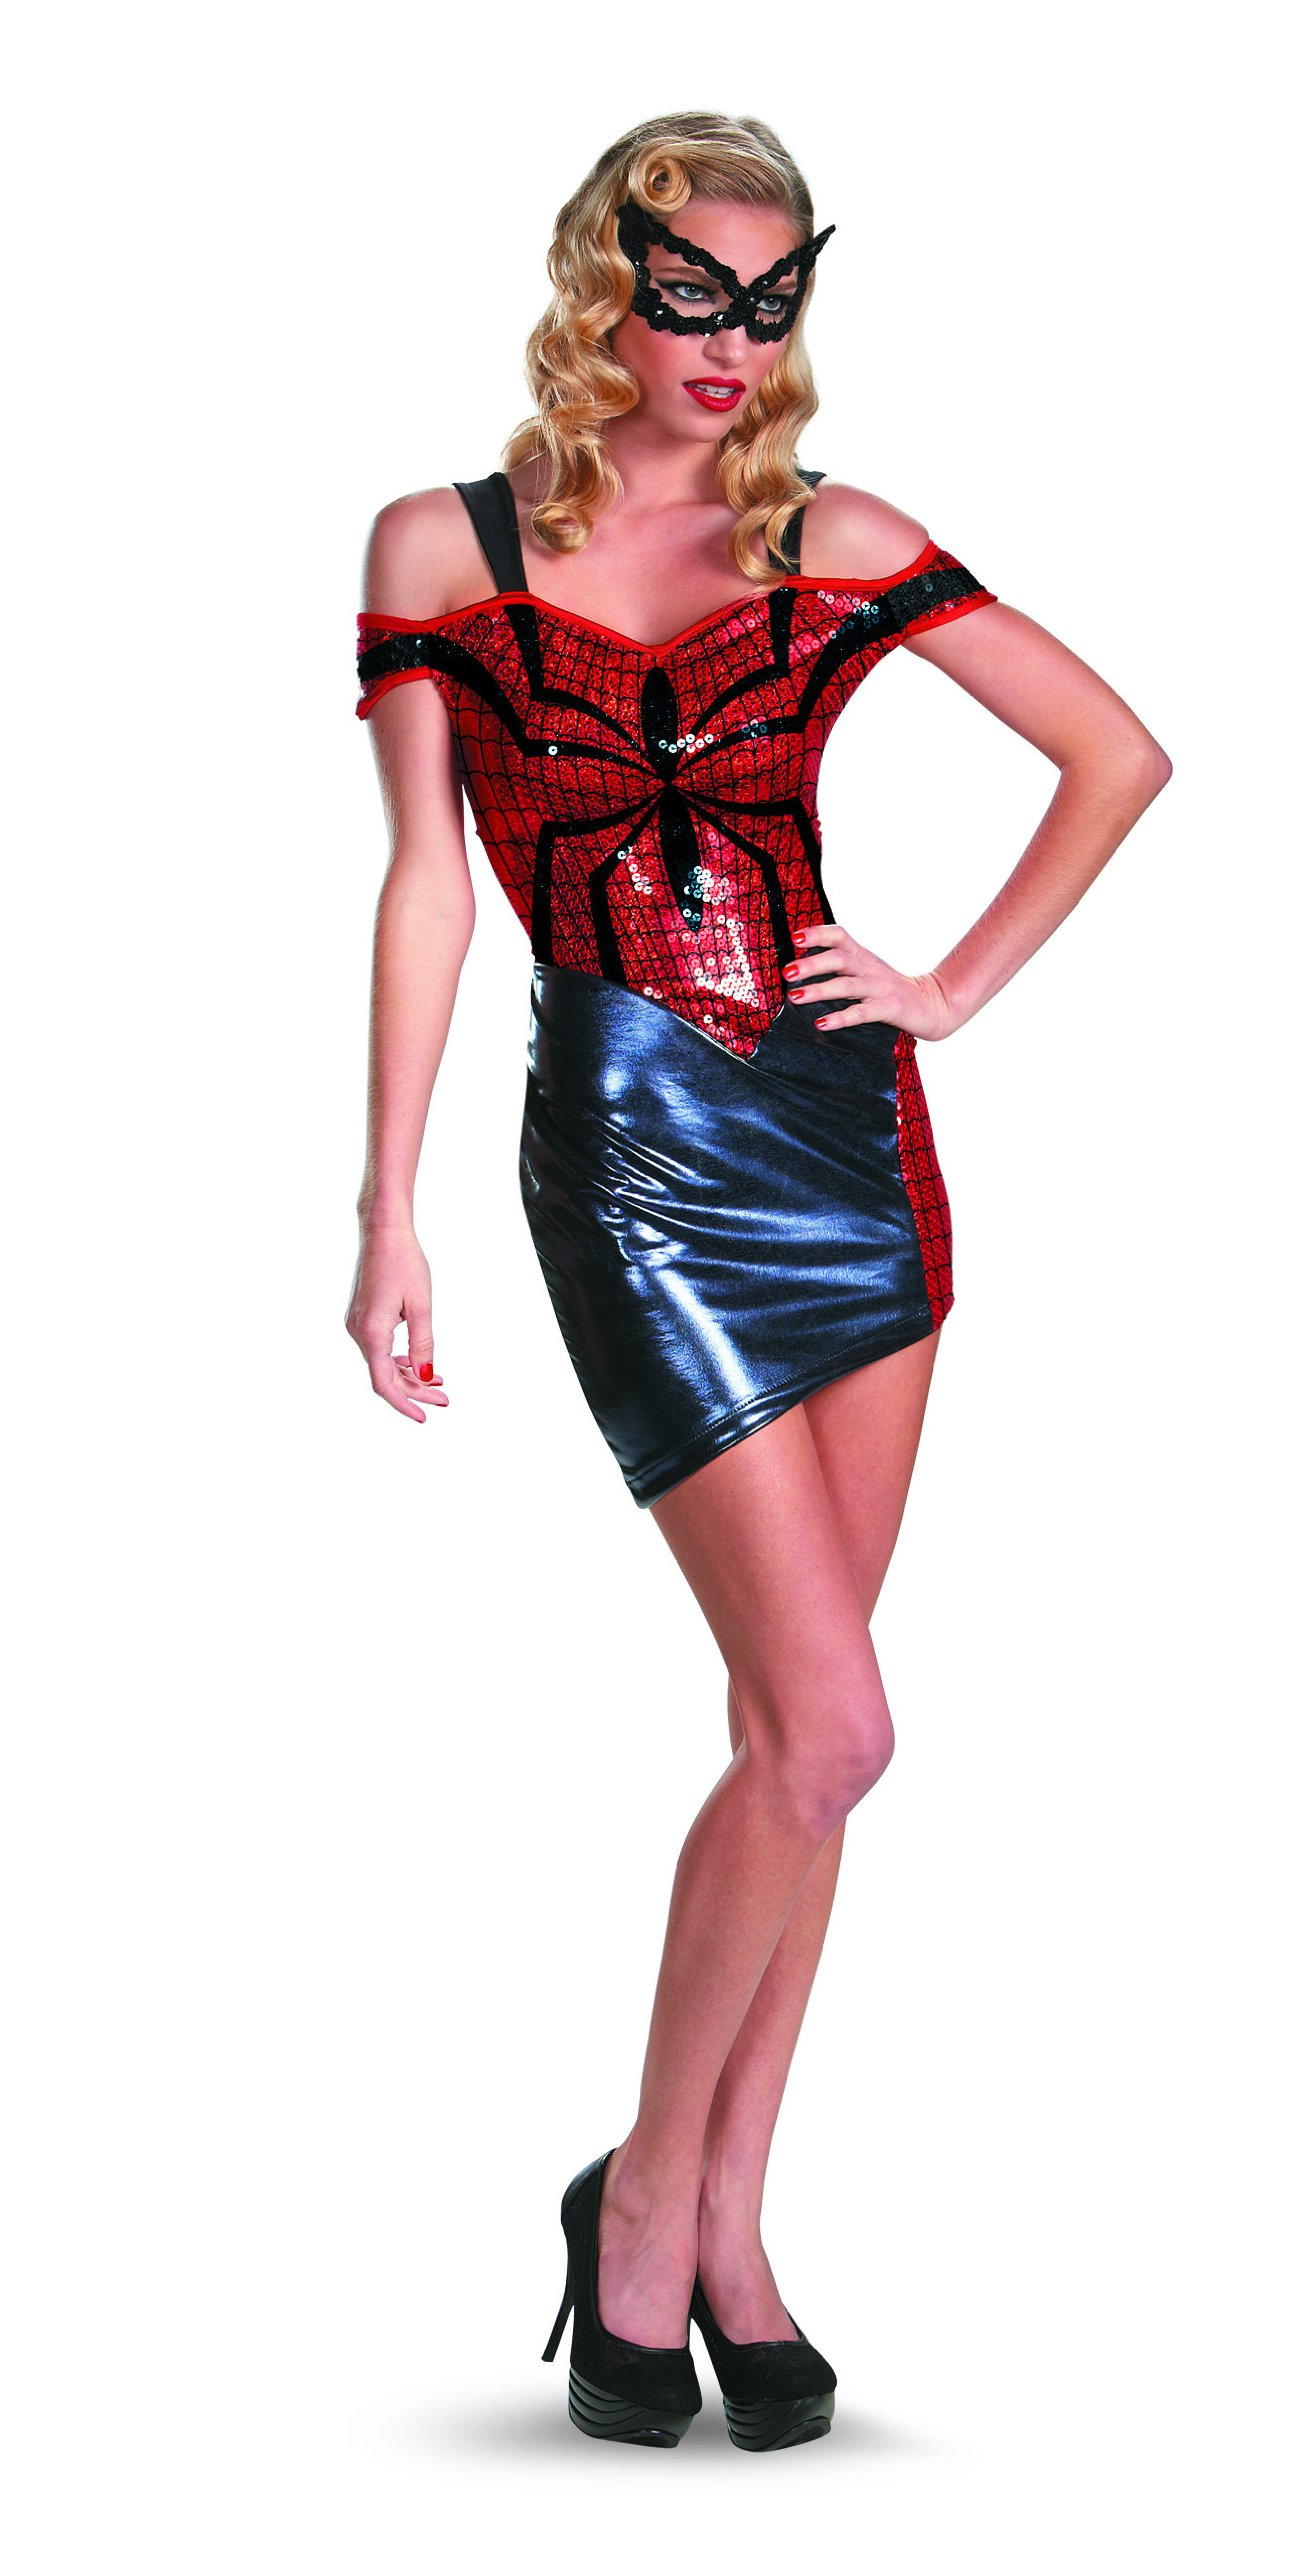 - 81yVVwmh7yL - Marvel Disguise Women Of Mavel Spider-Man Spider-Girl Glam Womens Adult Costume